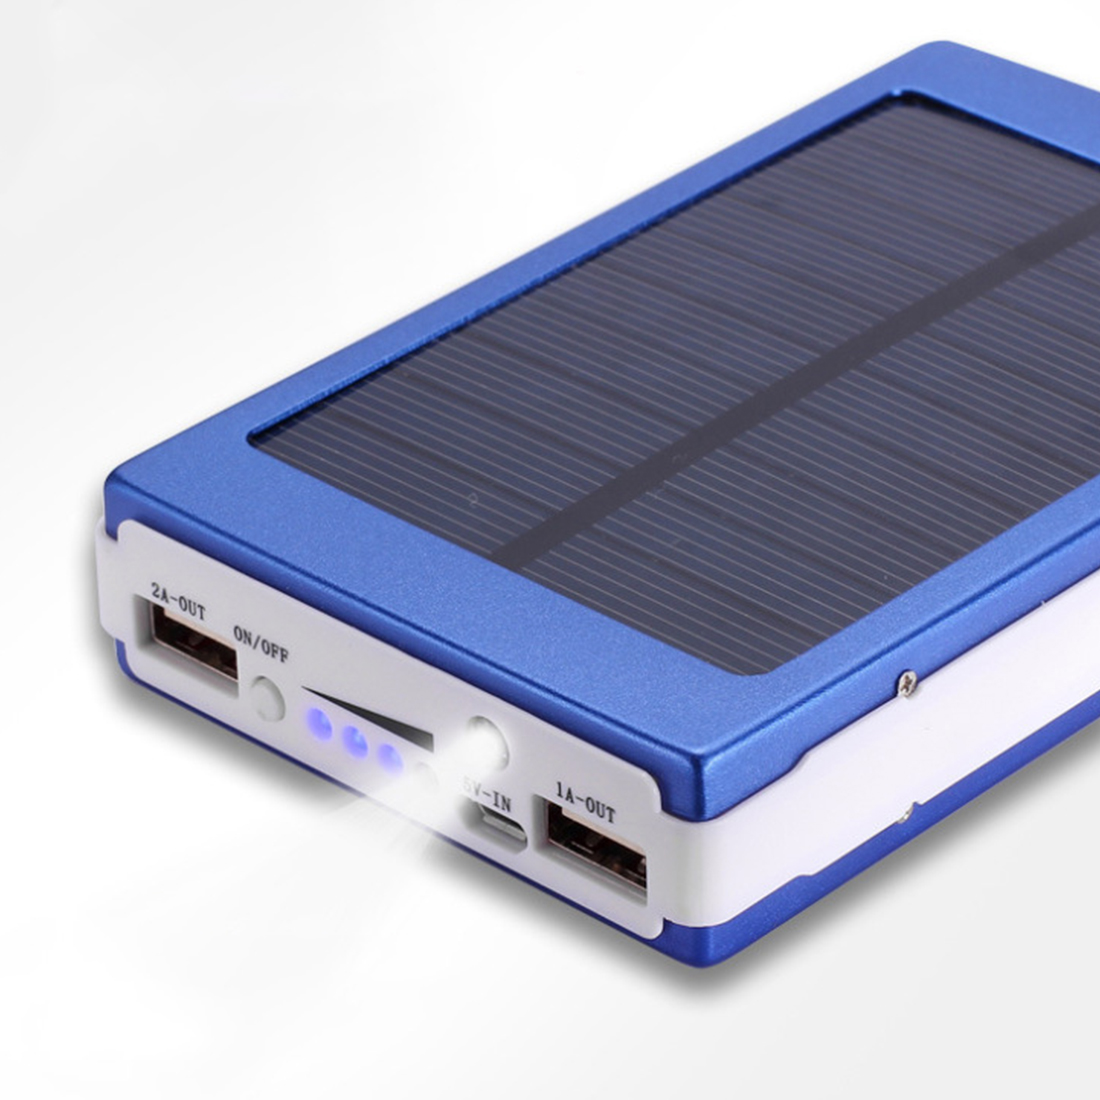 New 30000mAh Solar Battery Portable Charger Cellphones & Telecommunications Mobile Phone Accessories Solar Panel Chargers